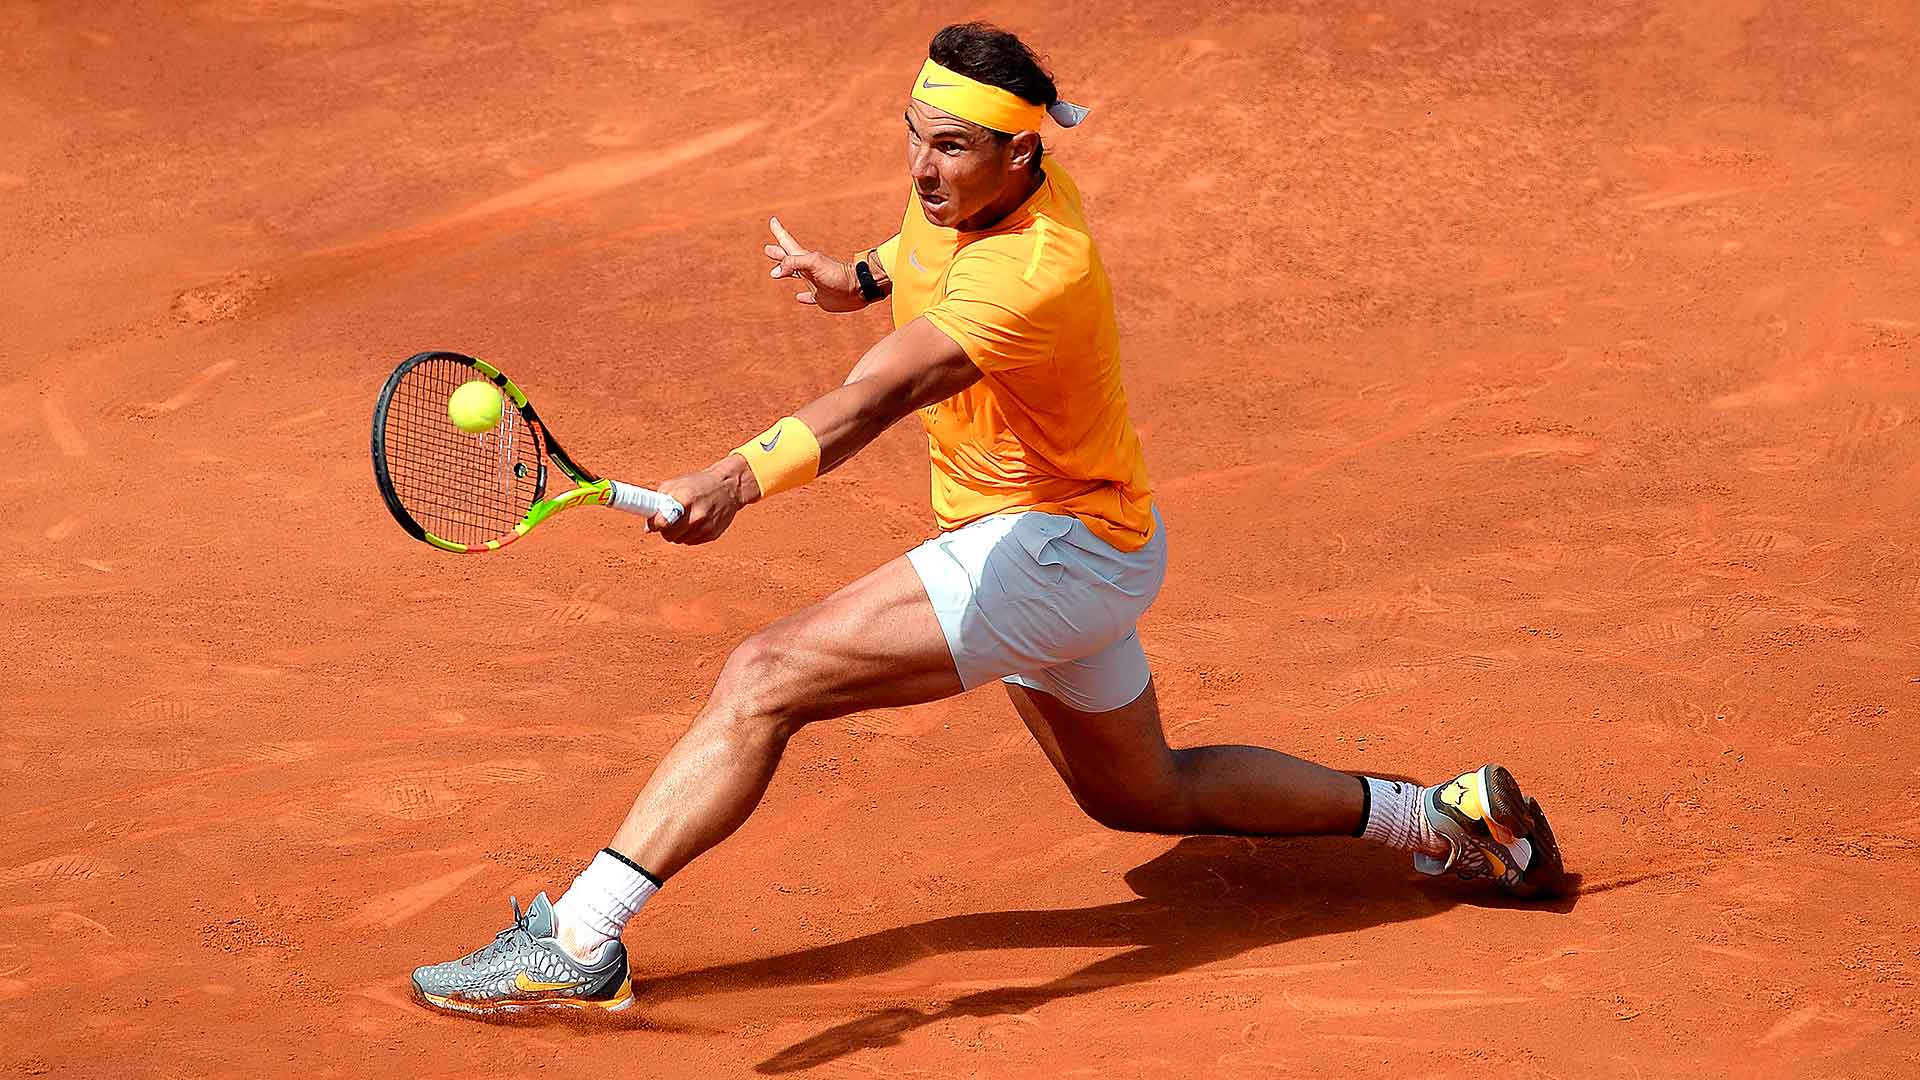 Nadal extends record clay-court pace in Barcelona opener.  ▶️ https://t.co/g91N0PlC7M #ATP #bcnopenbs https://t.co/TloTJK348K